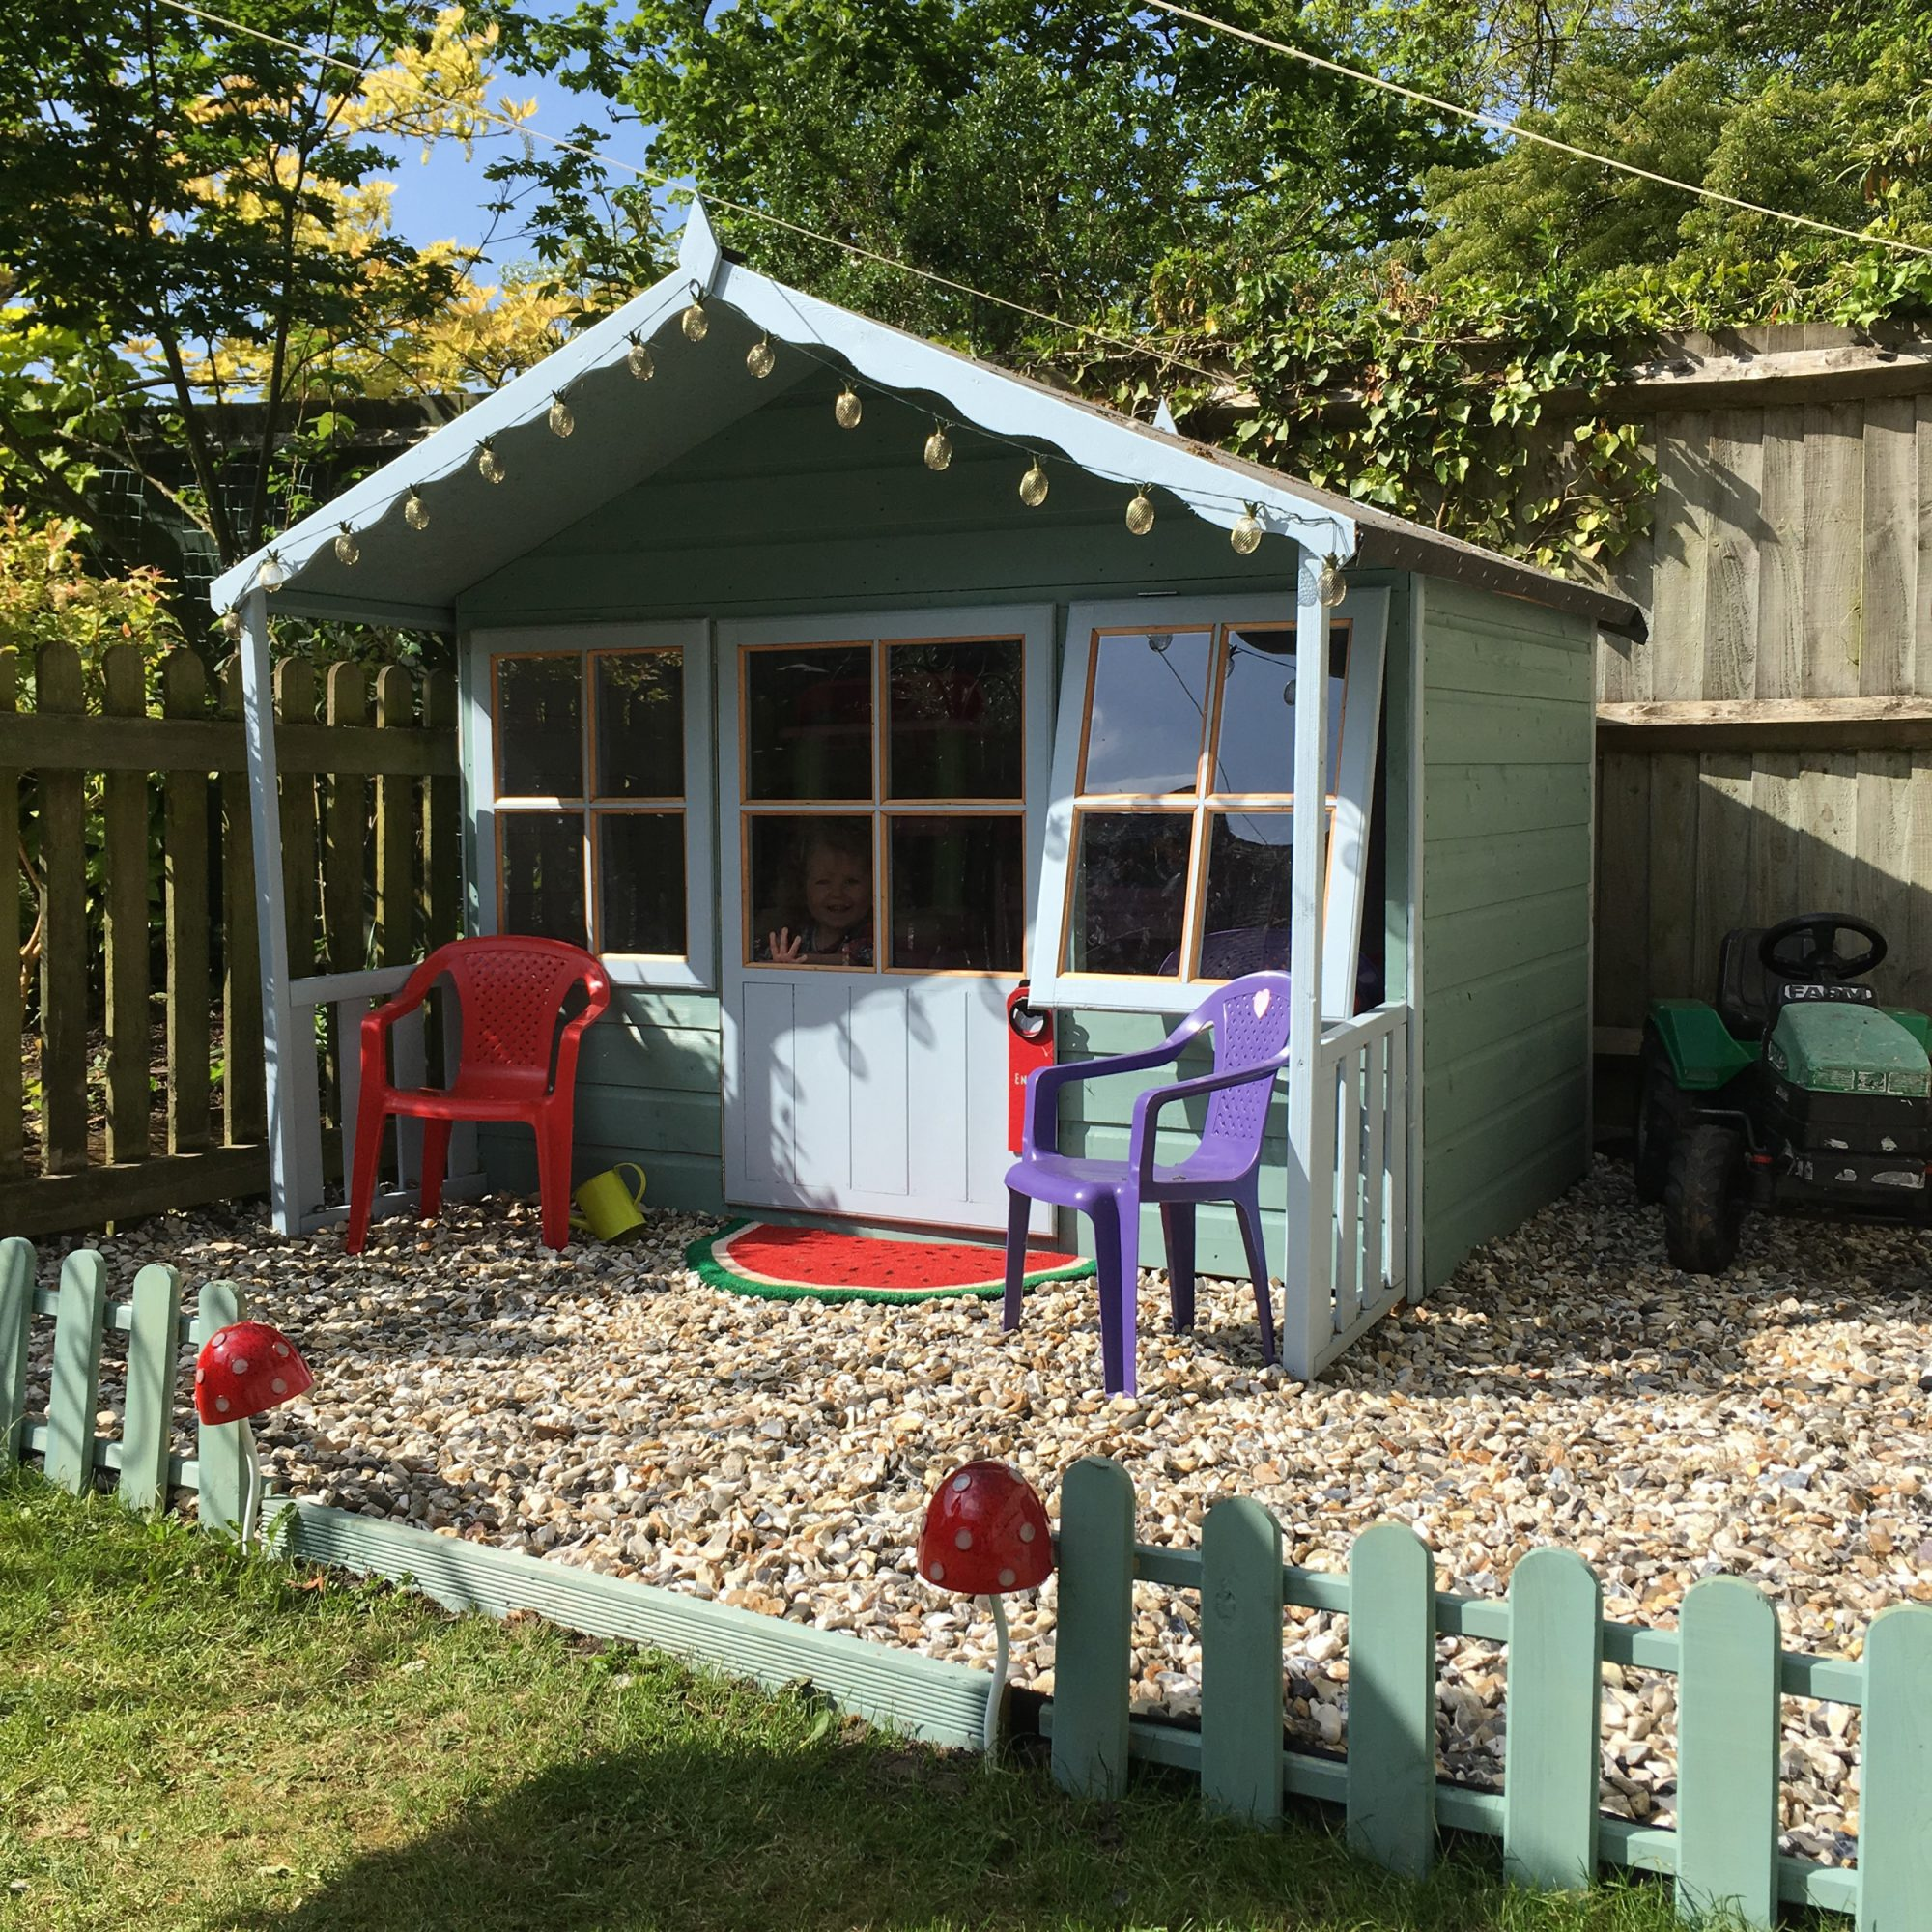 Shire pixie wooden playhouse elbec garden buildings for Wooden playhouse with garage